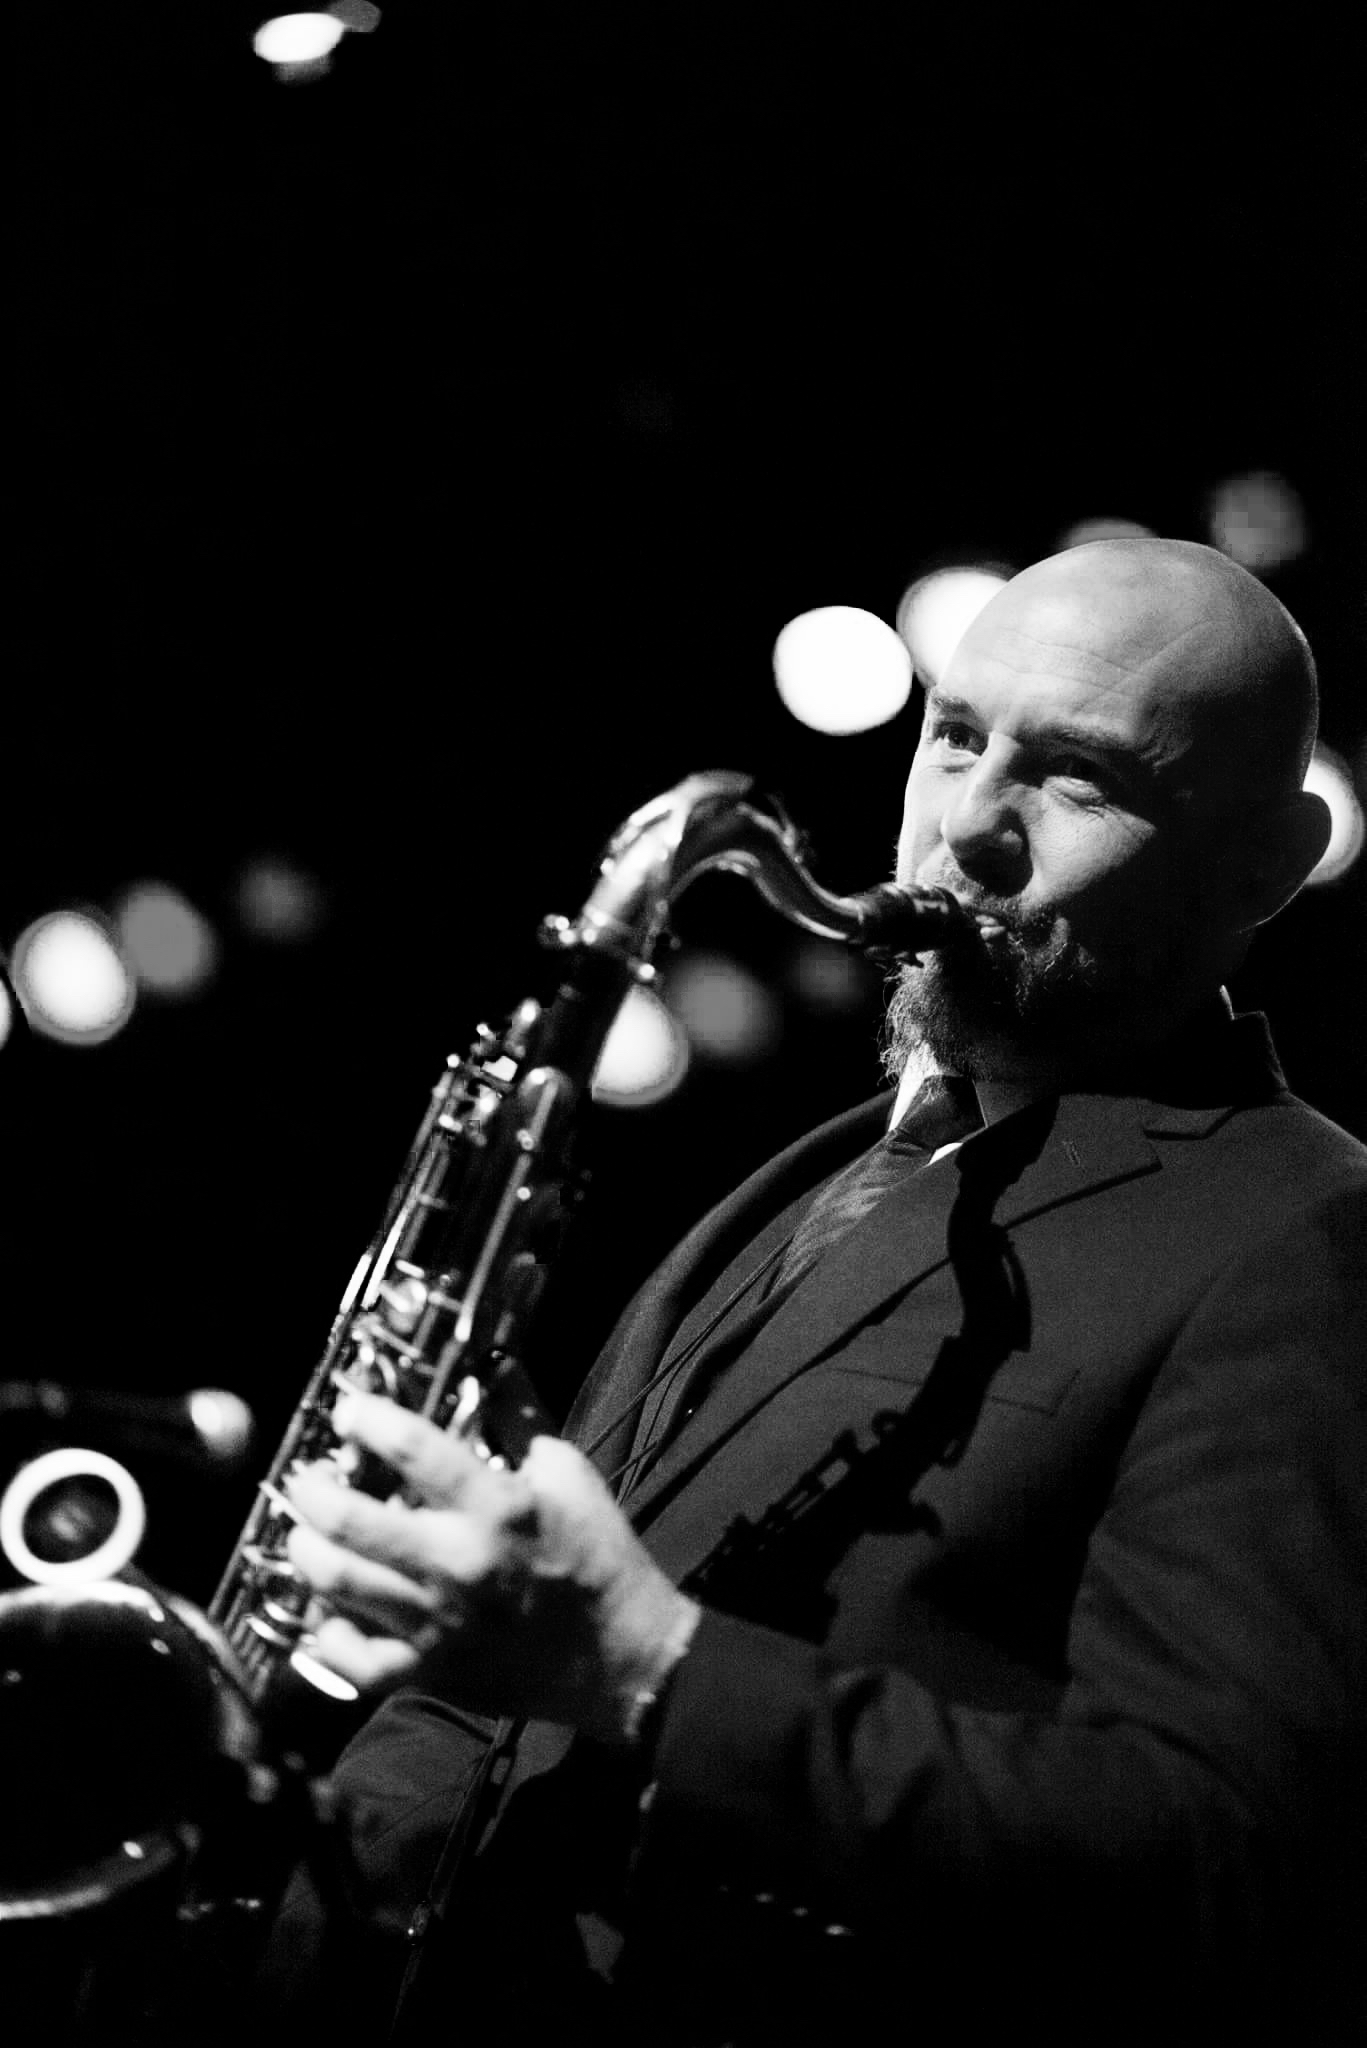 Andy Warr is a saxophonist, producer,and composer